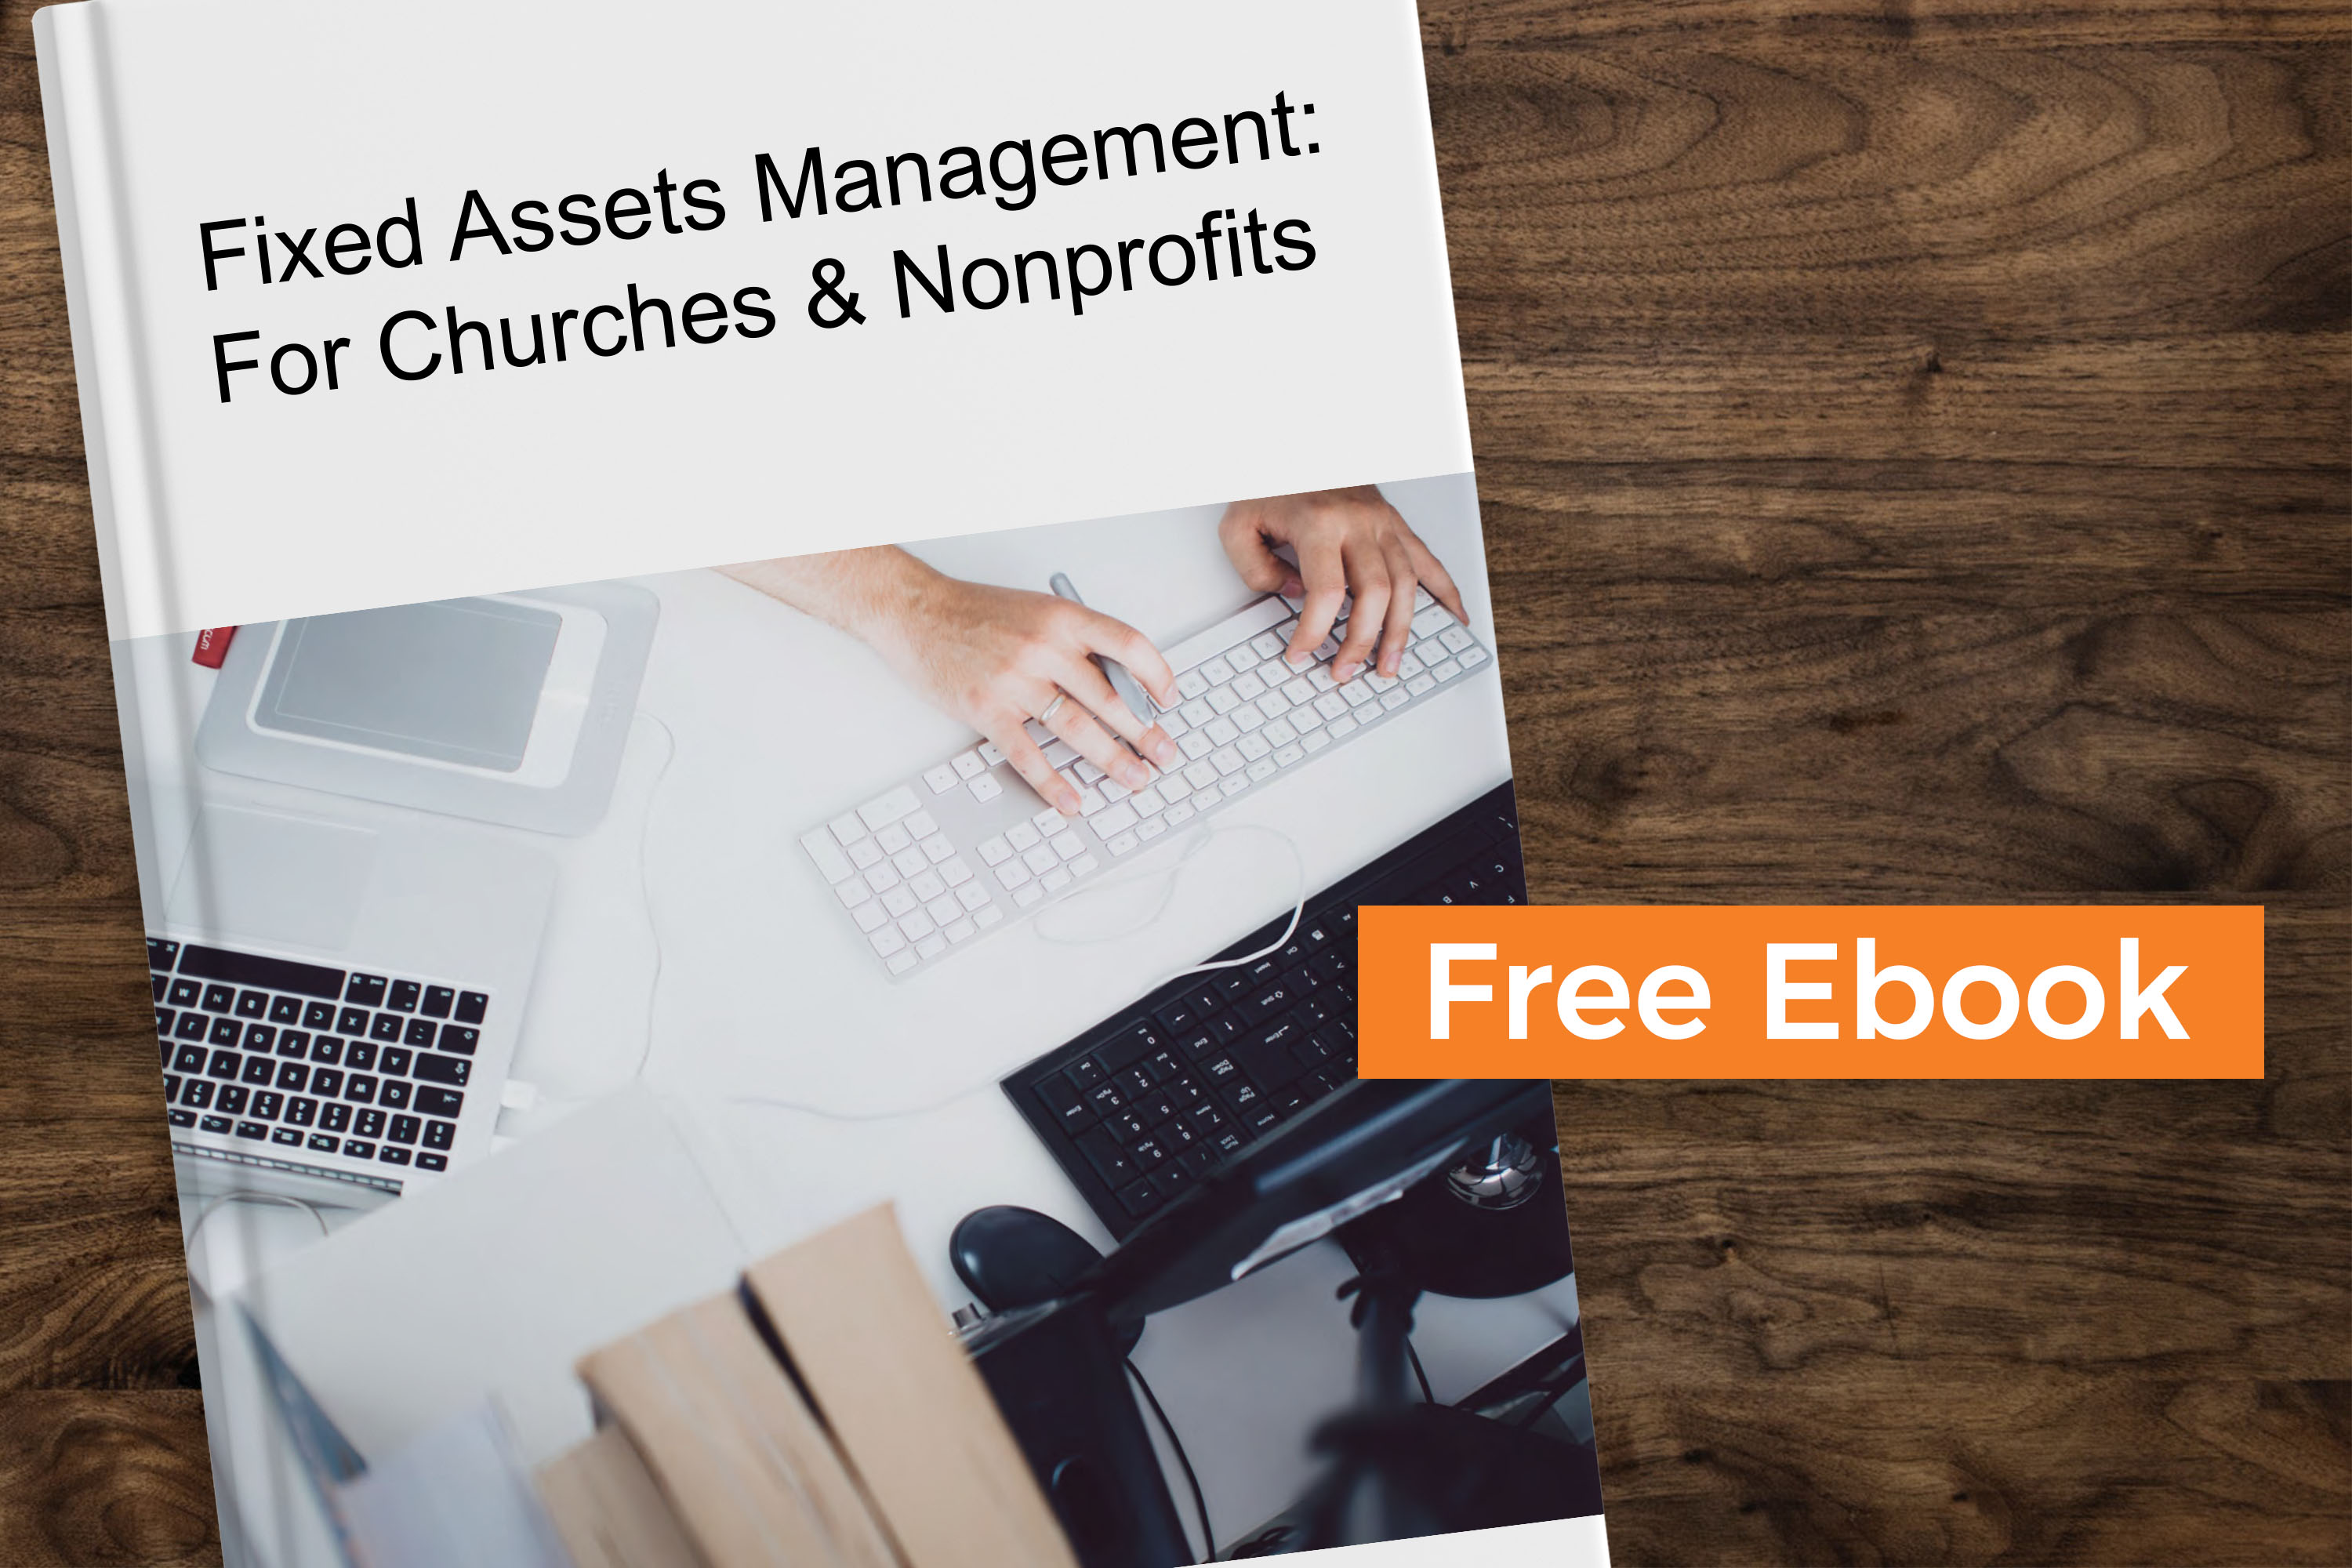 Free eBook: Fixed Assets Management for Churches and Nonprofits